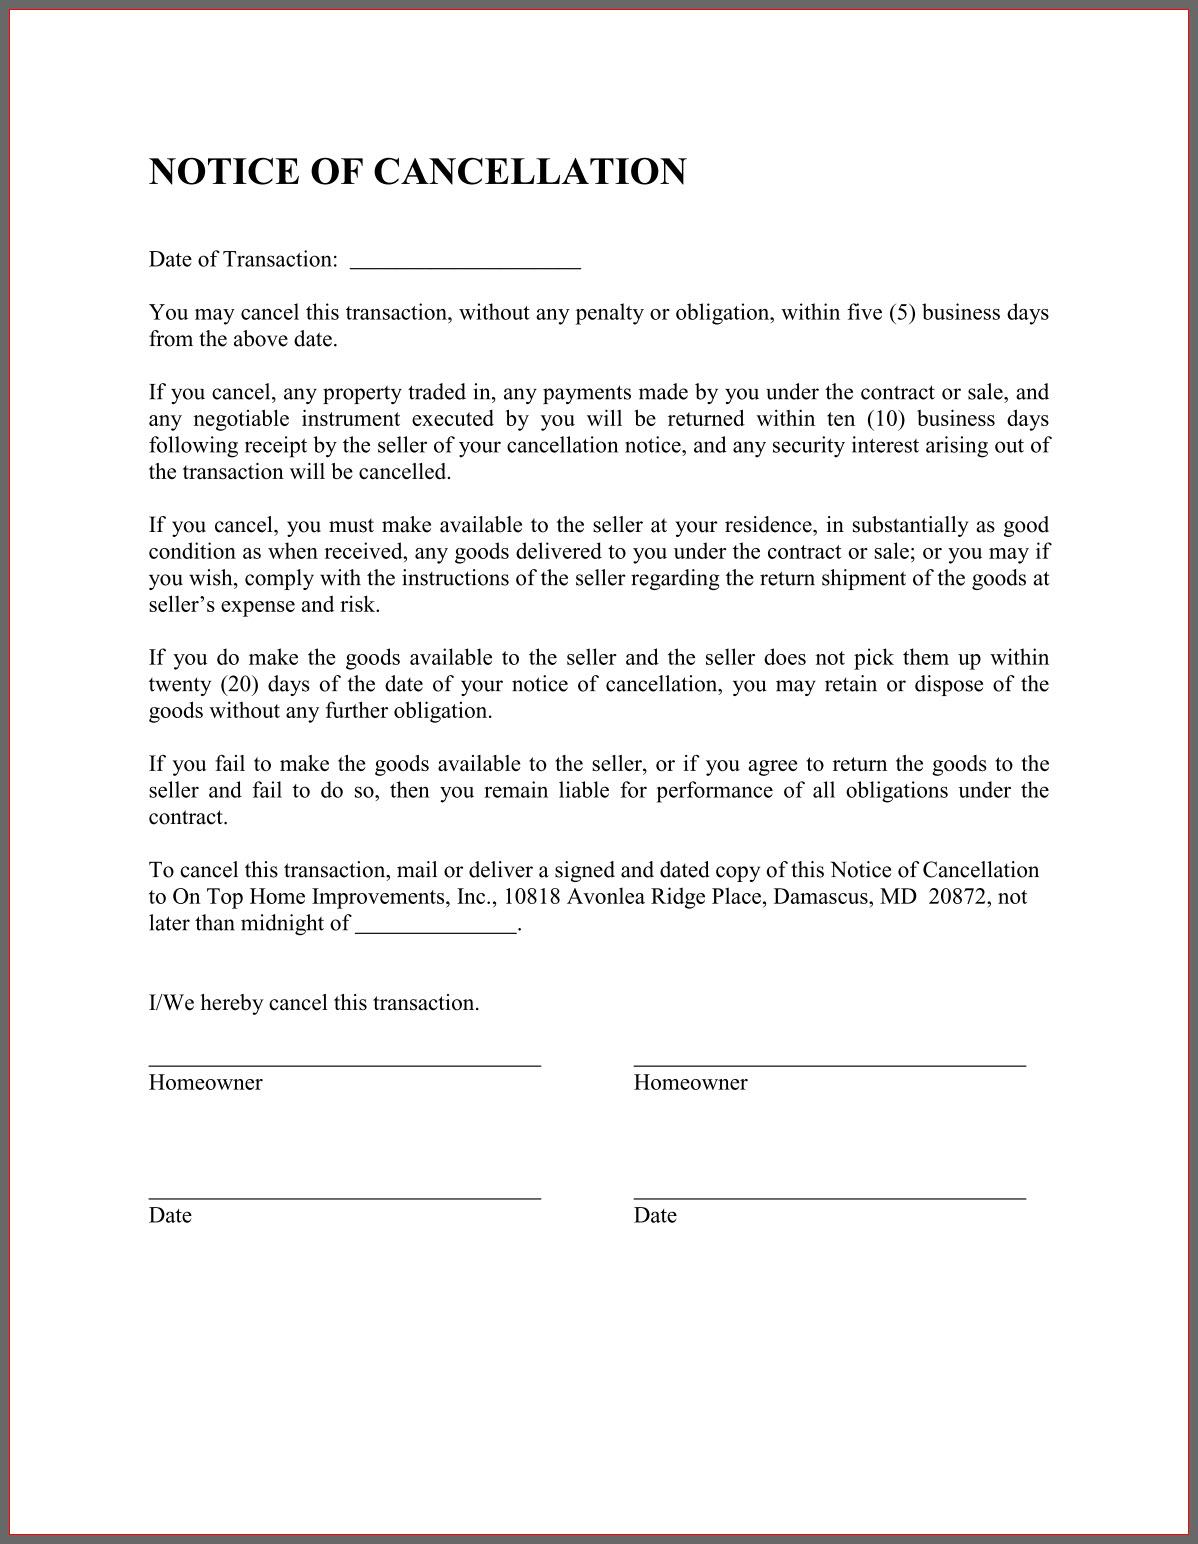 Termination Letter Format For Layoff From Business